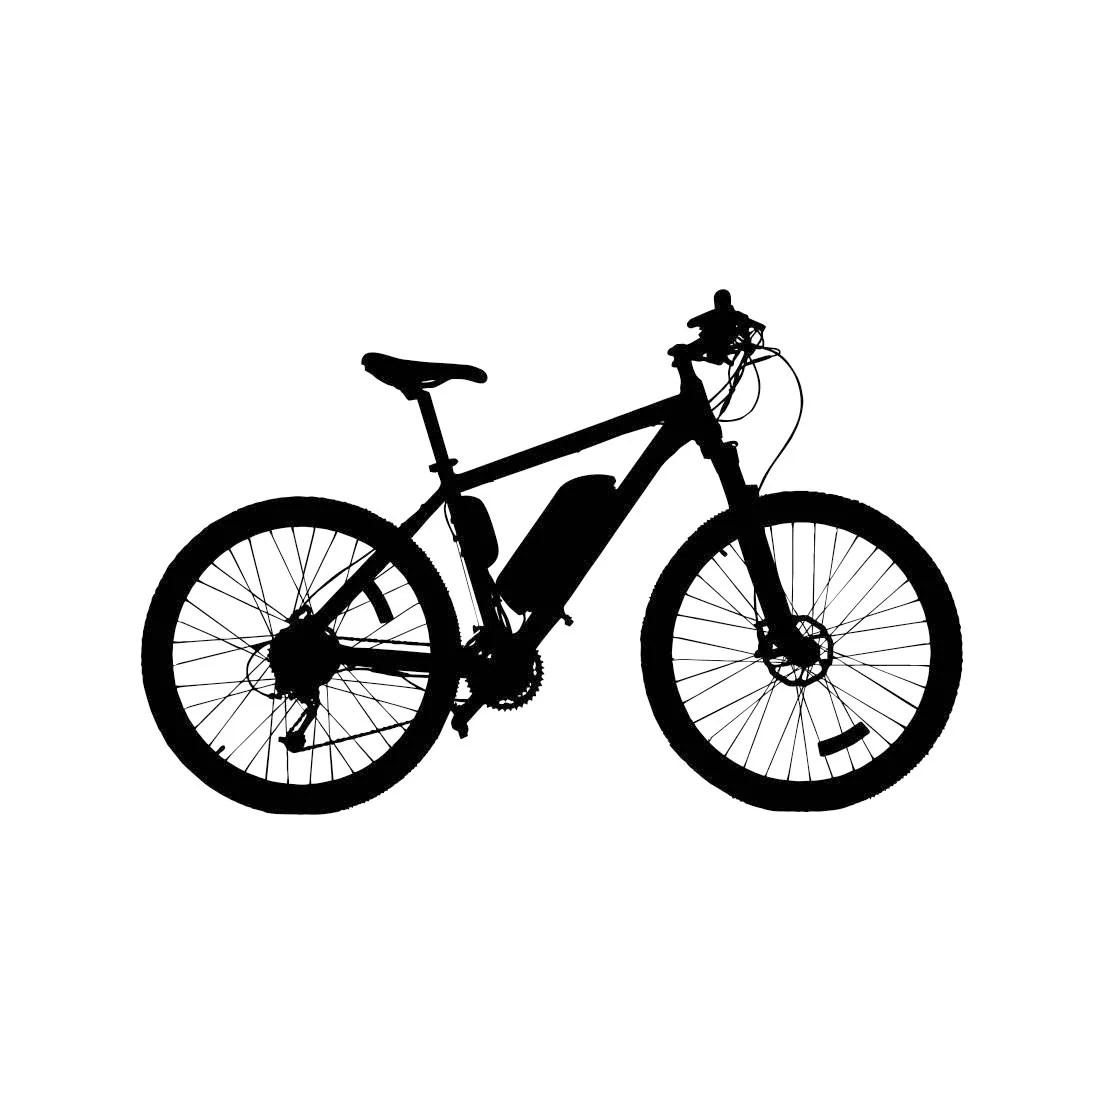 Bicycle Bike Cycling Graphics Svg Dxf Eps Cdr Ai